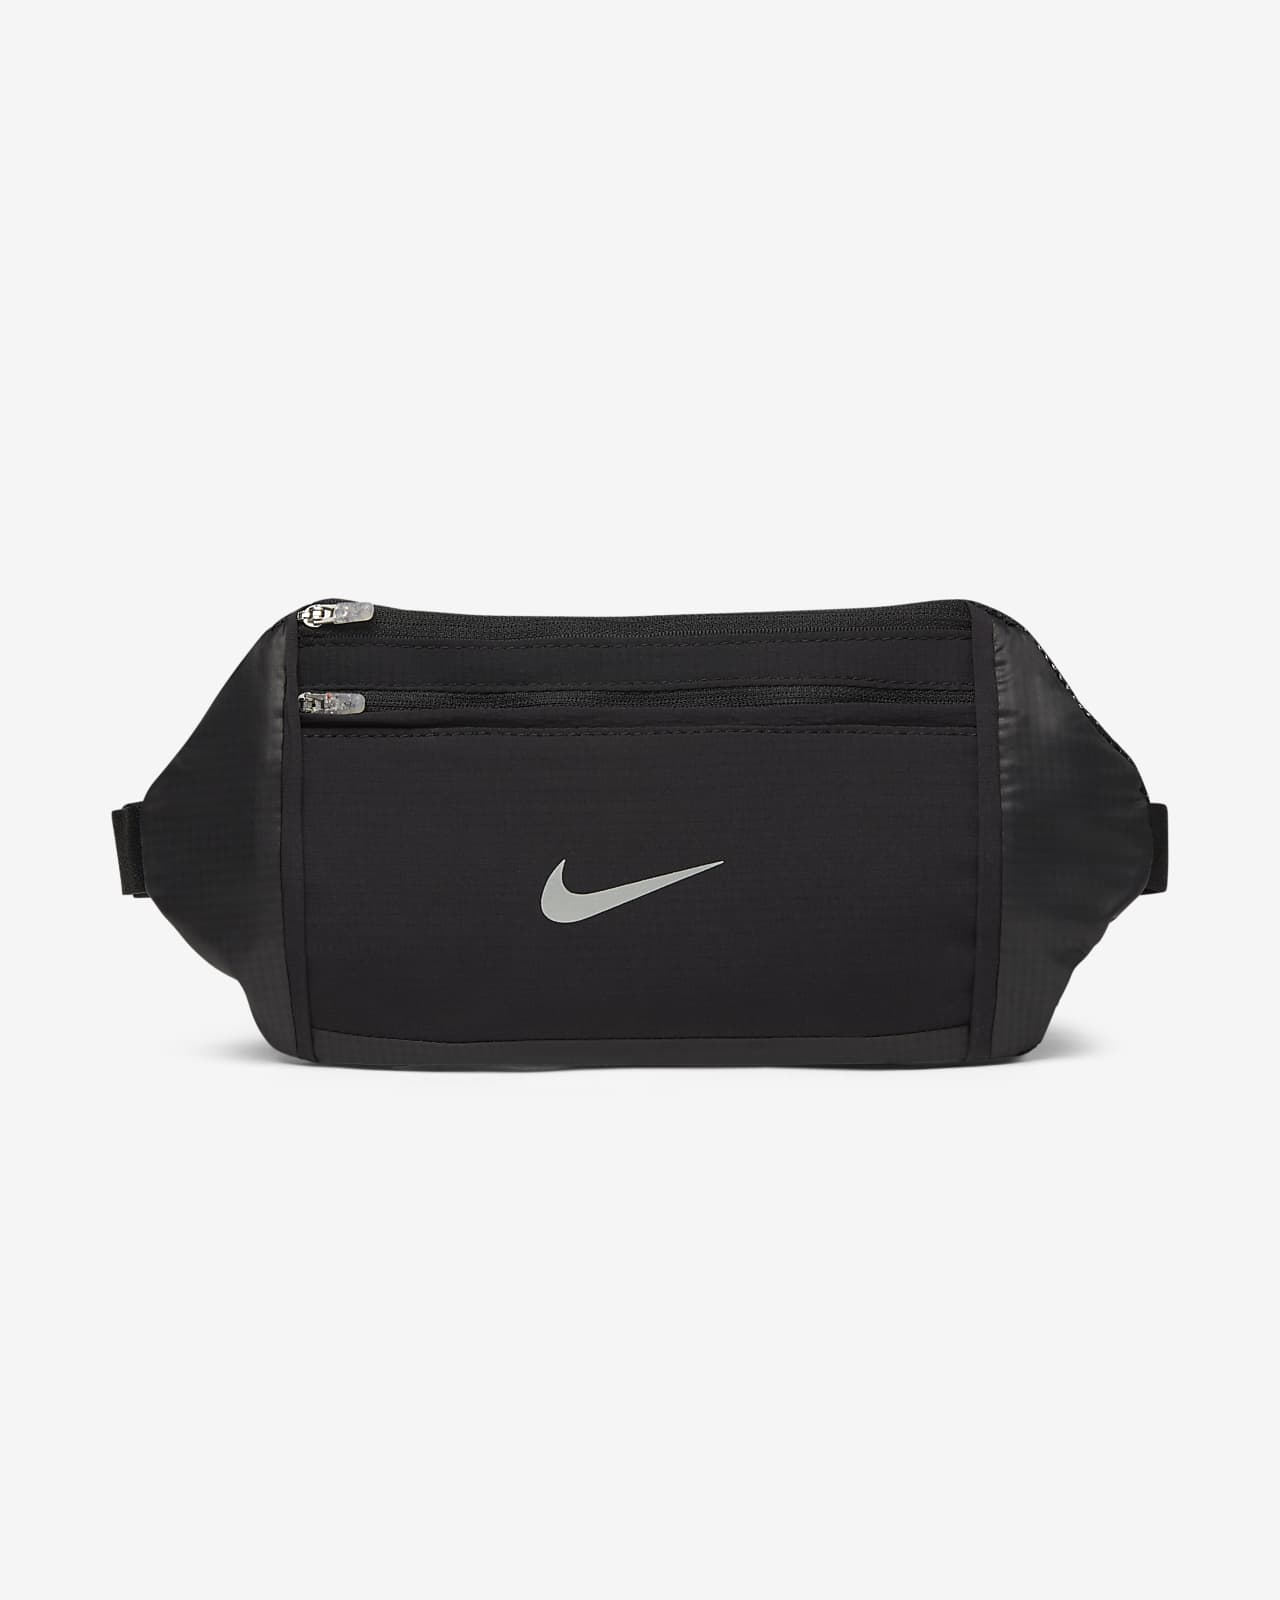 Nike Challenger Running Fanny Pack (Large)